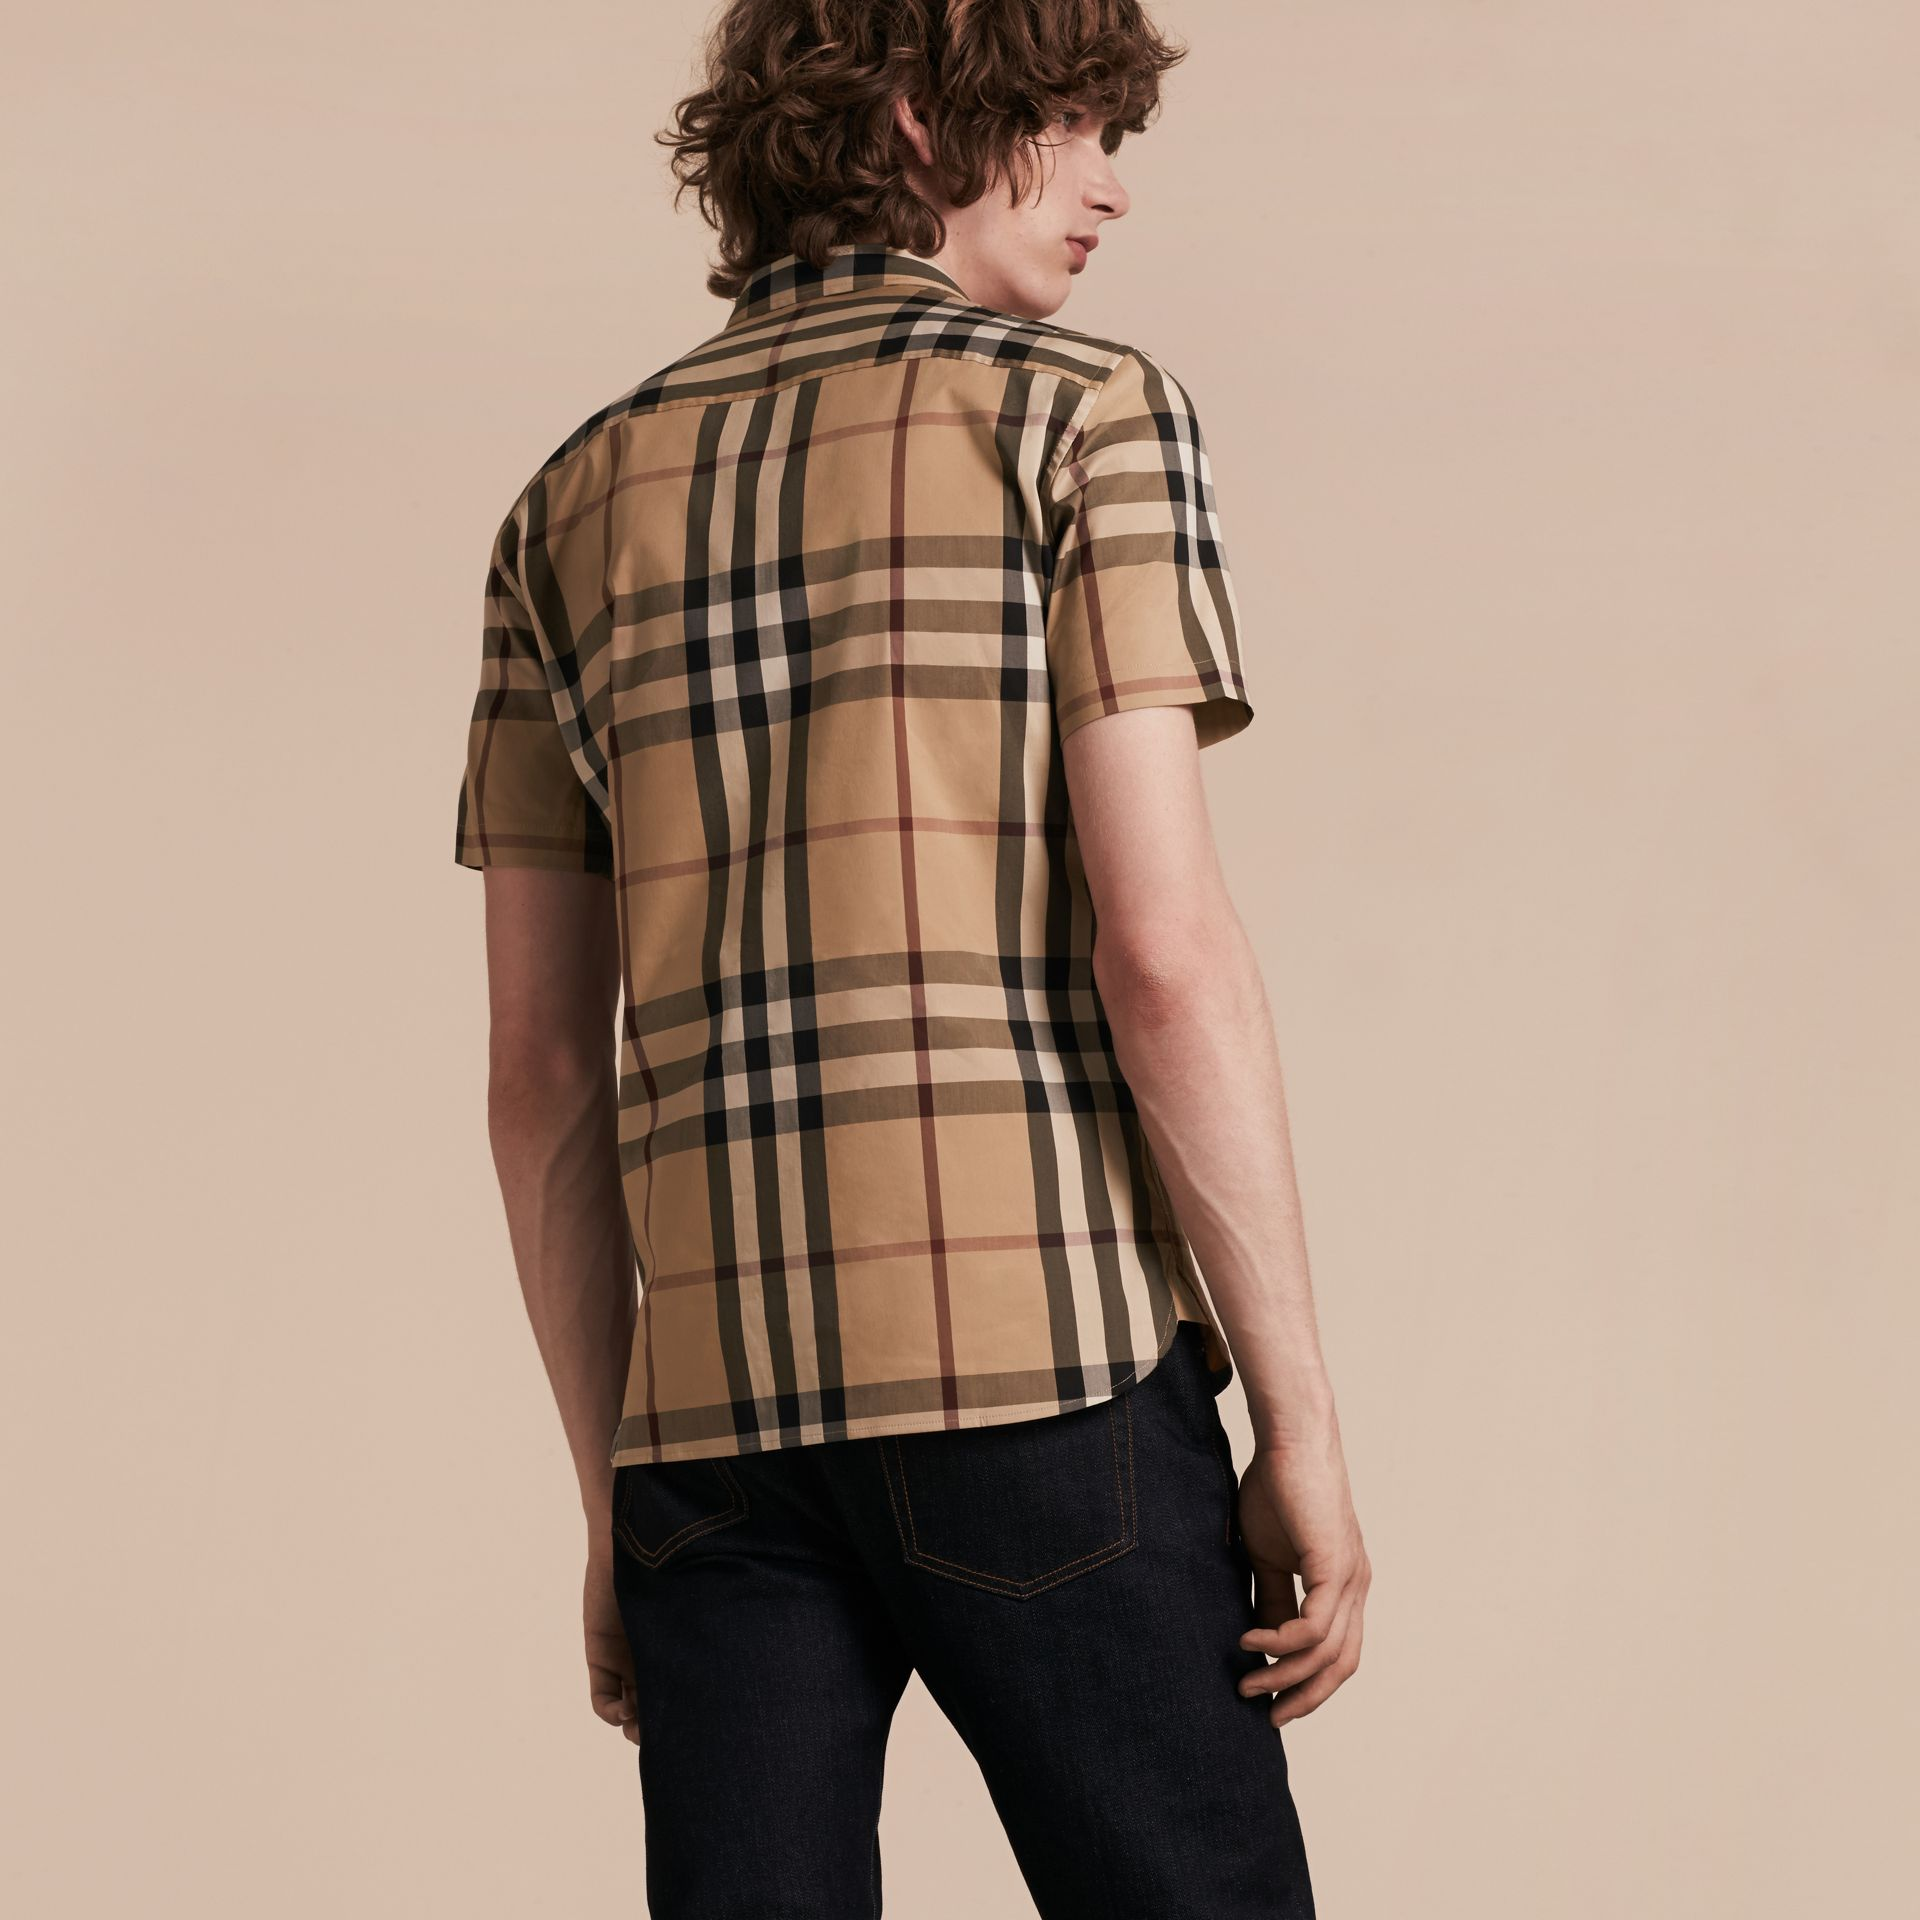 Camel Short-sleeved Check Stretch Cotton Shirt Camel - gallery image 2